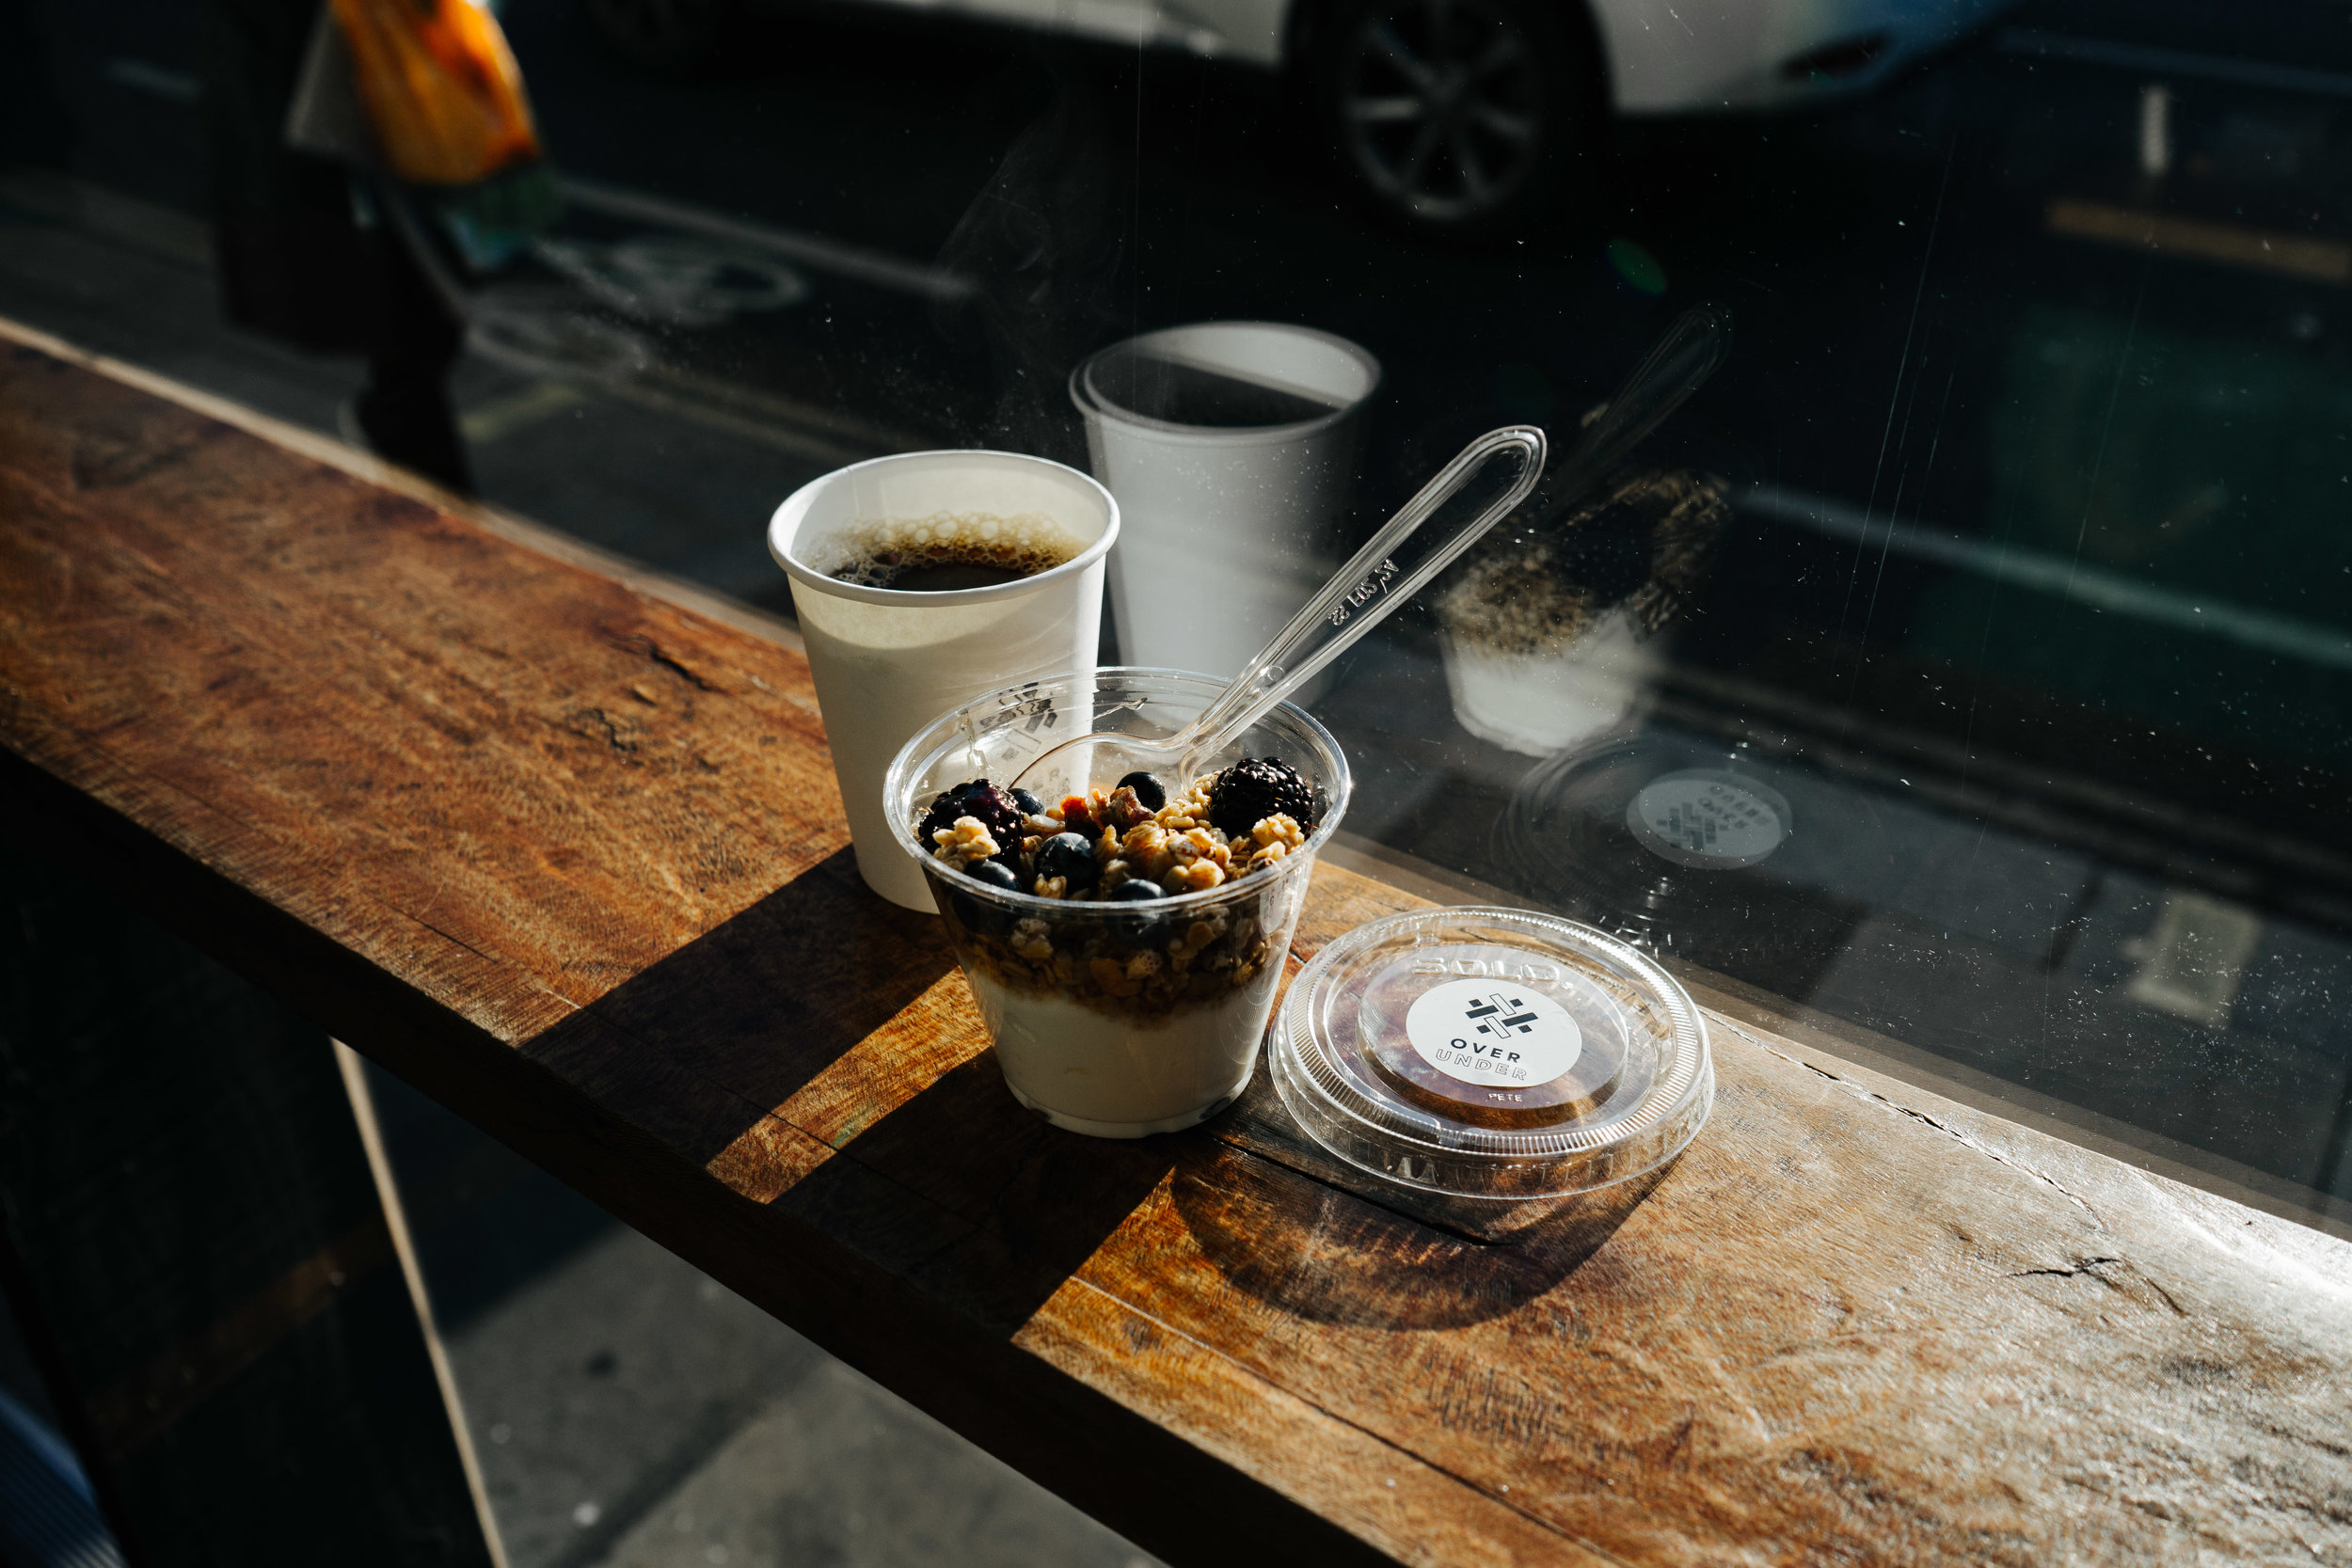 Grab_And_Go_Food_Coffee